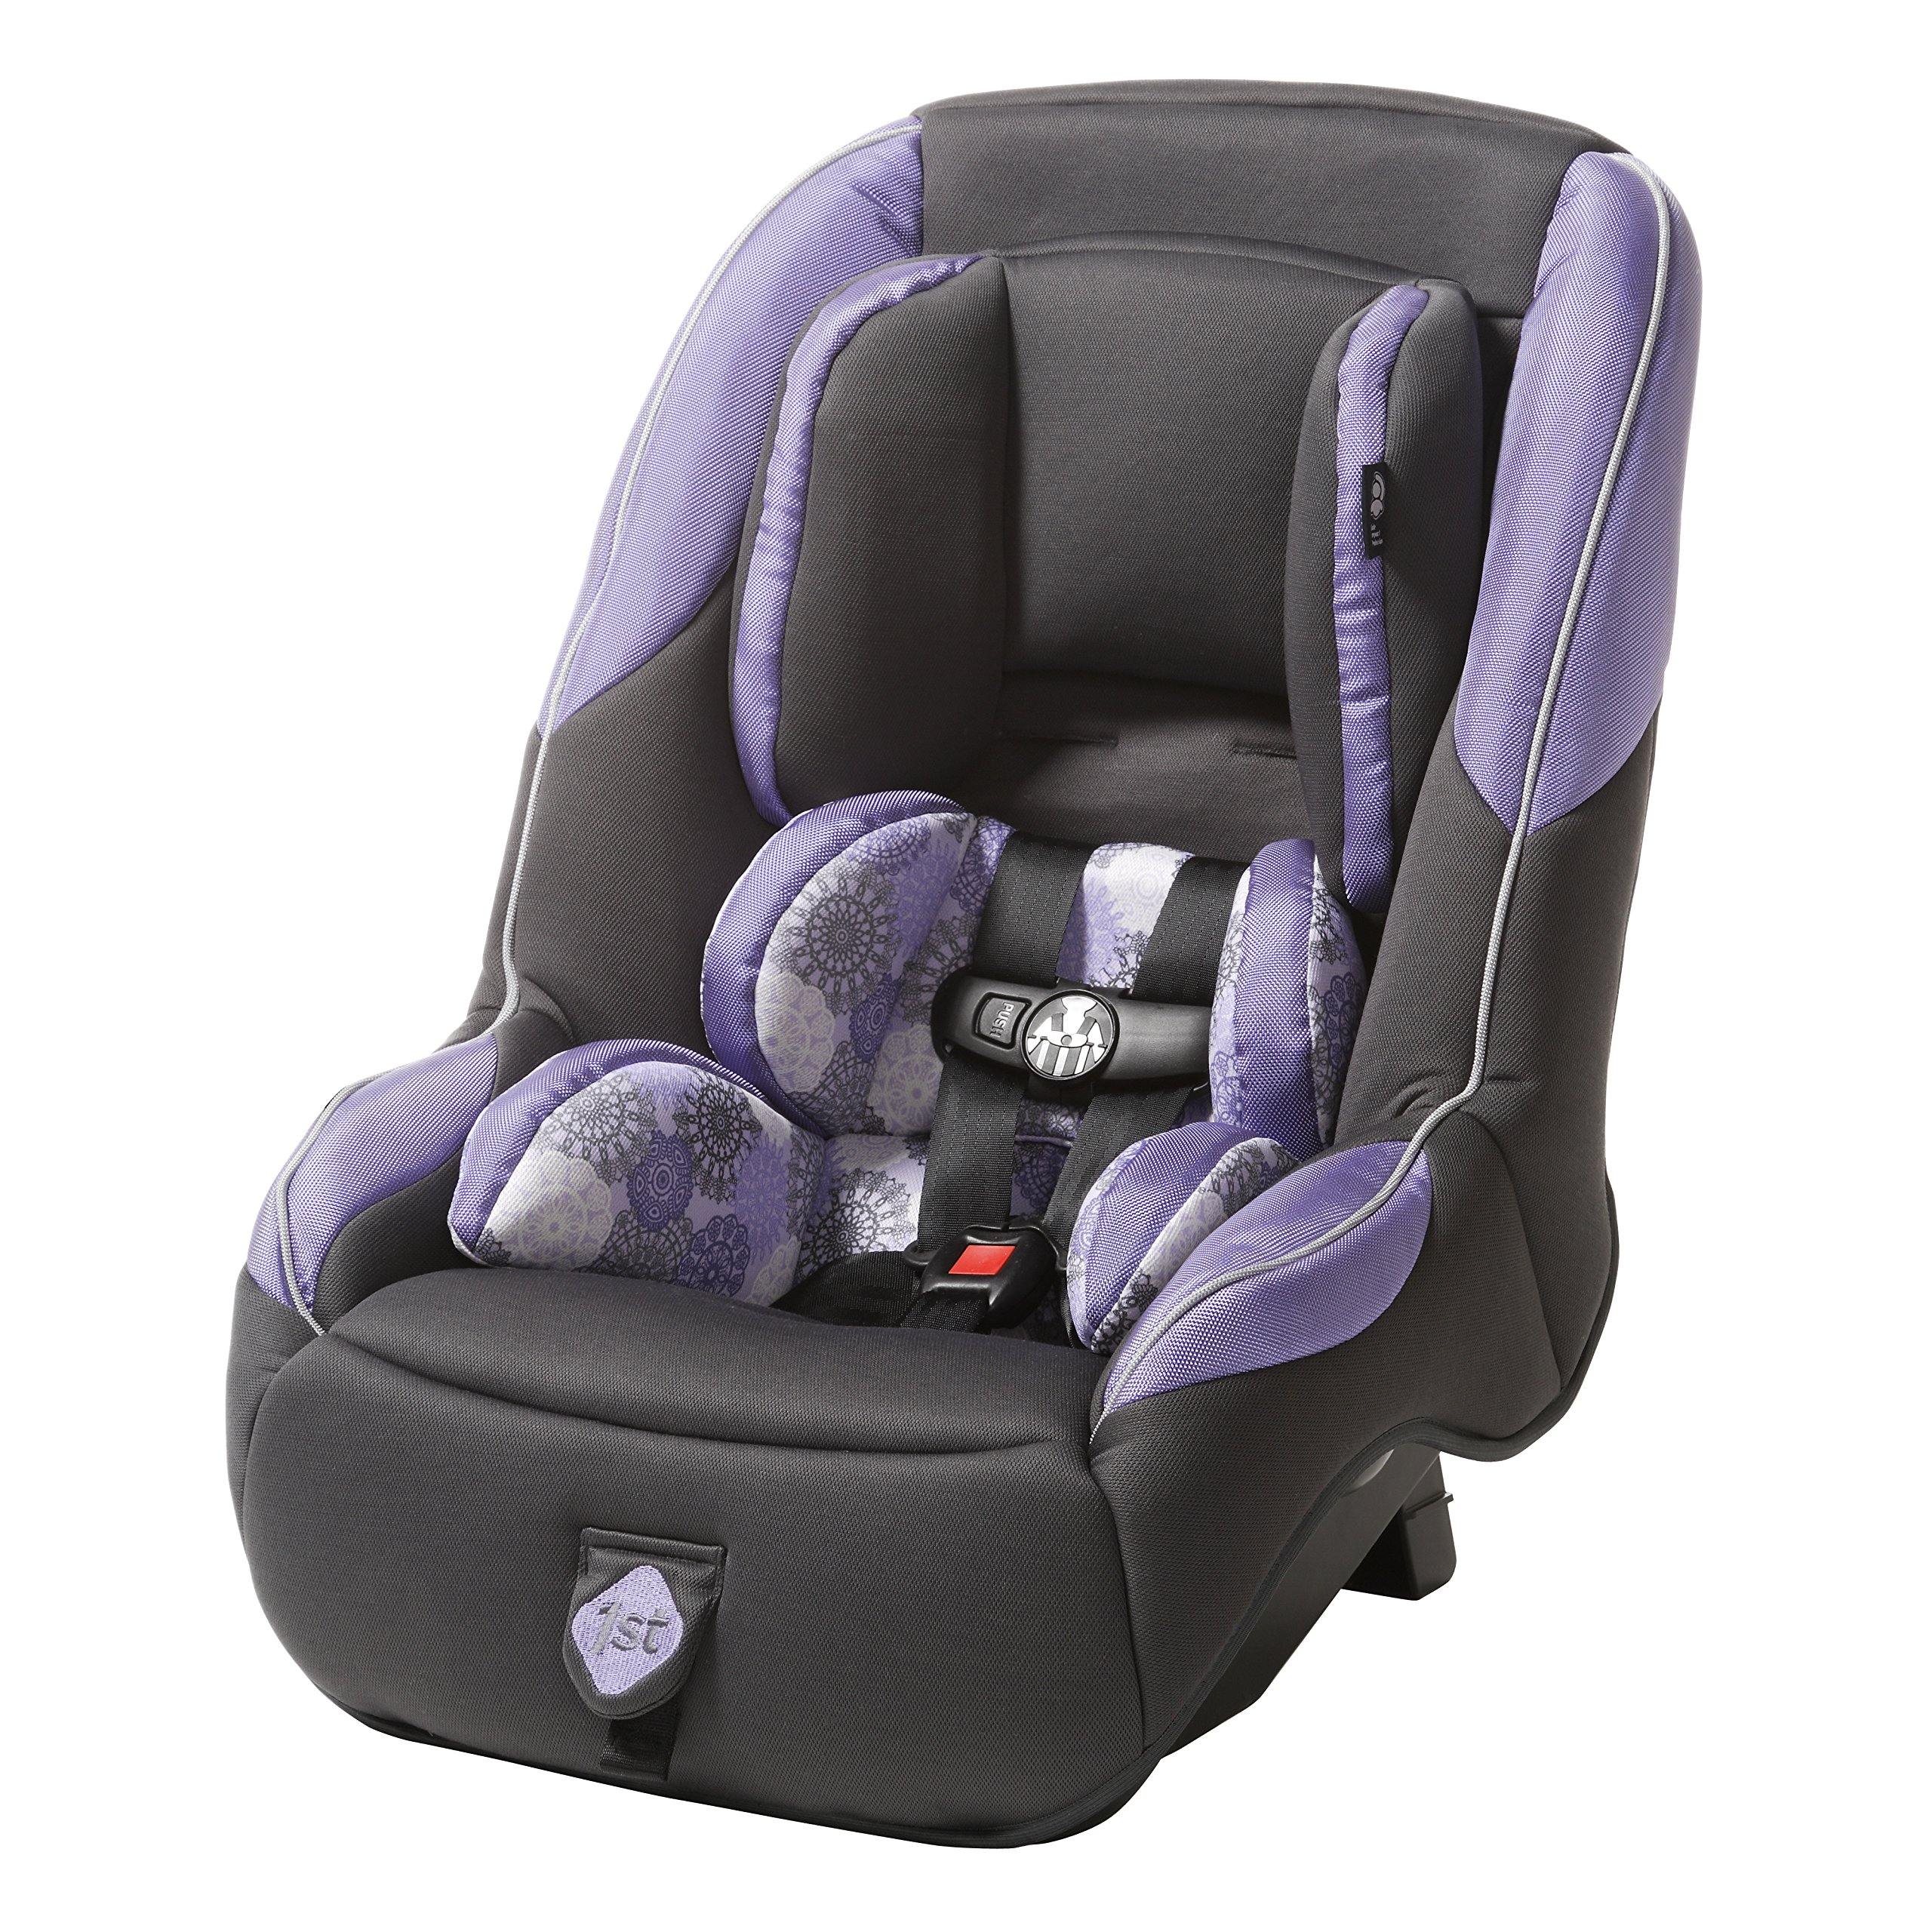 65 Convertible Car Seat, Victorian Lace